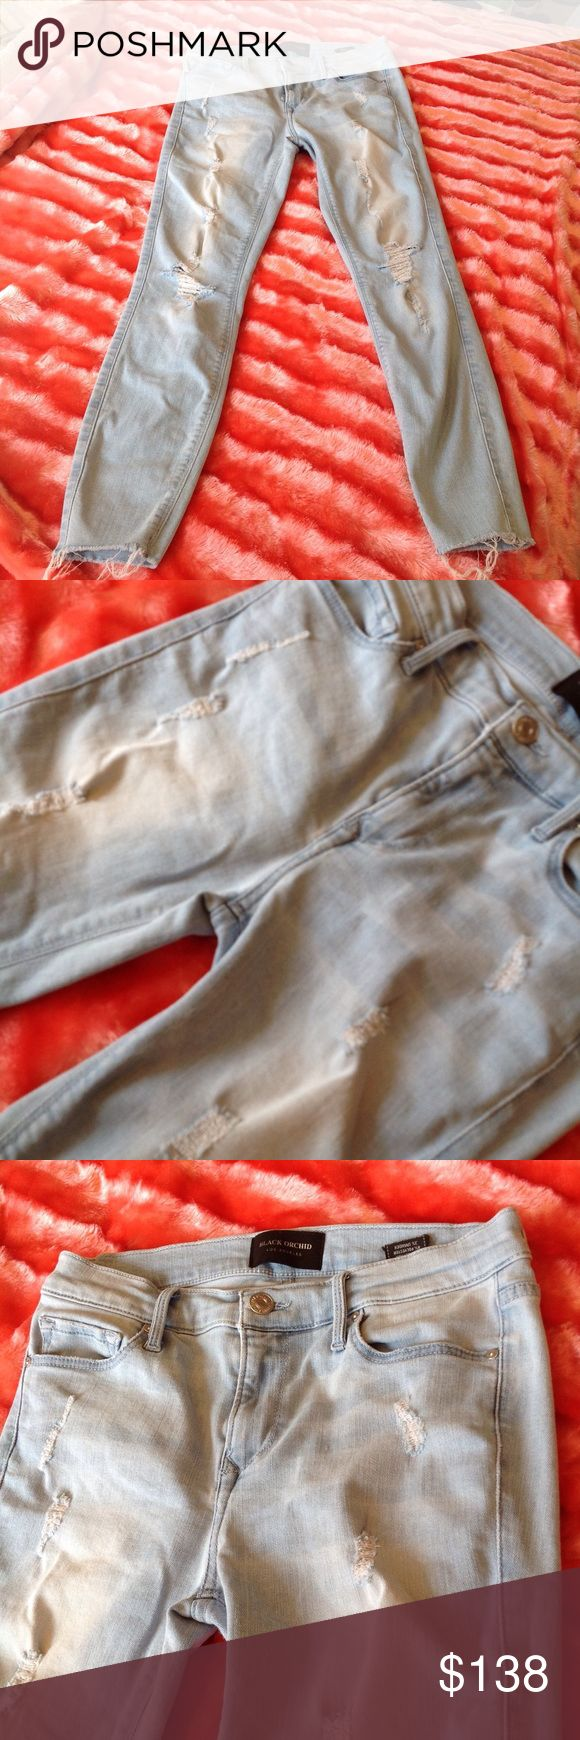 Black Orchid women's distressed jeans. Size 2. Black Orchid women's distressed jeans . Frayed hem and throughout. Size 2. Black Orchid Jeans